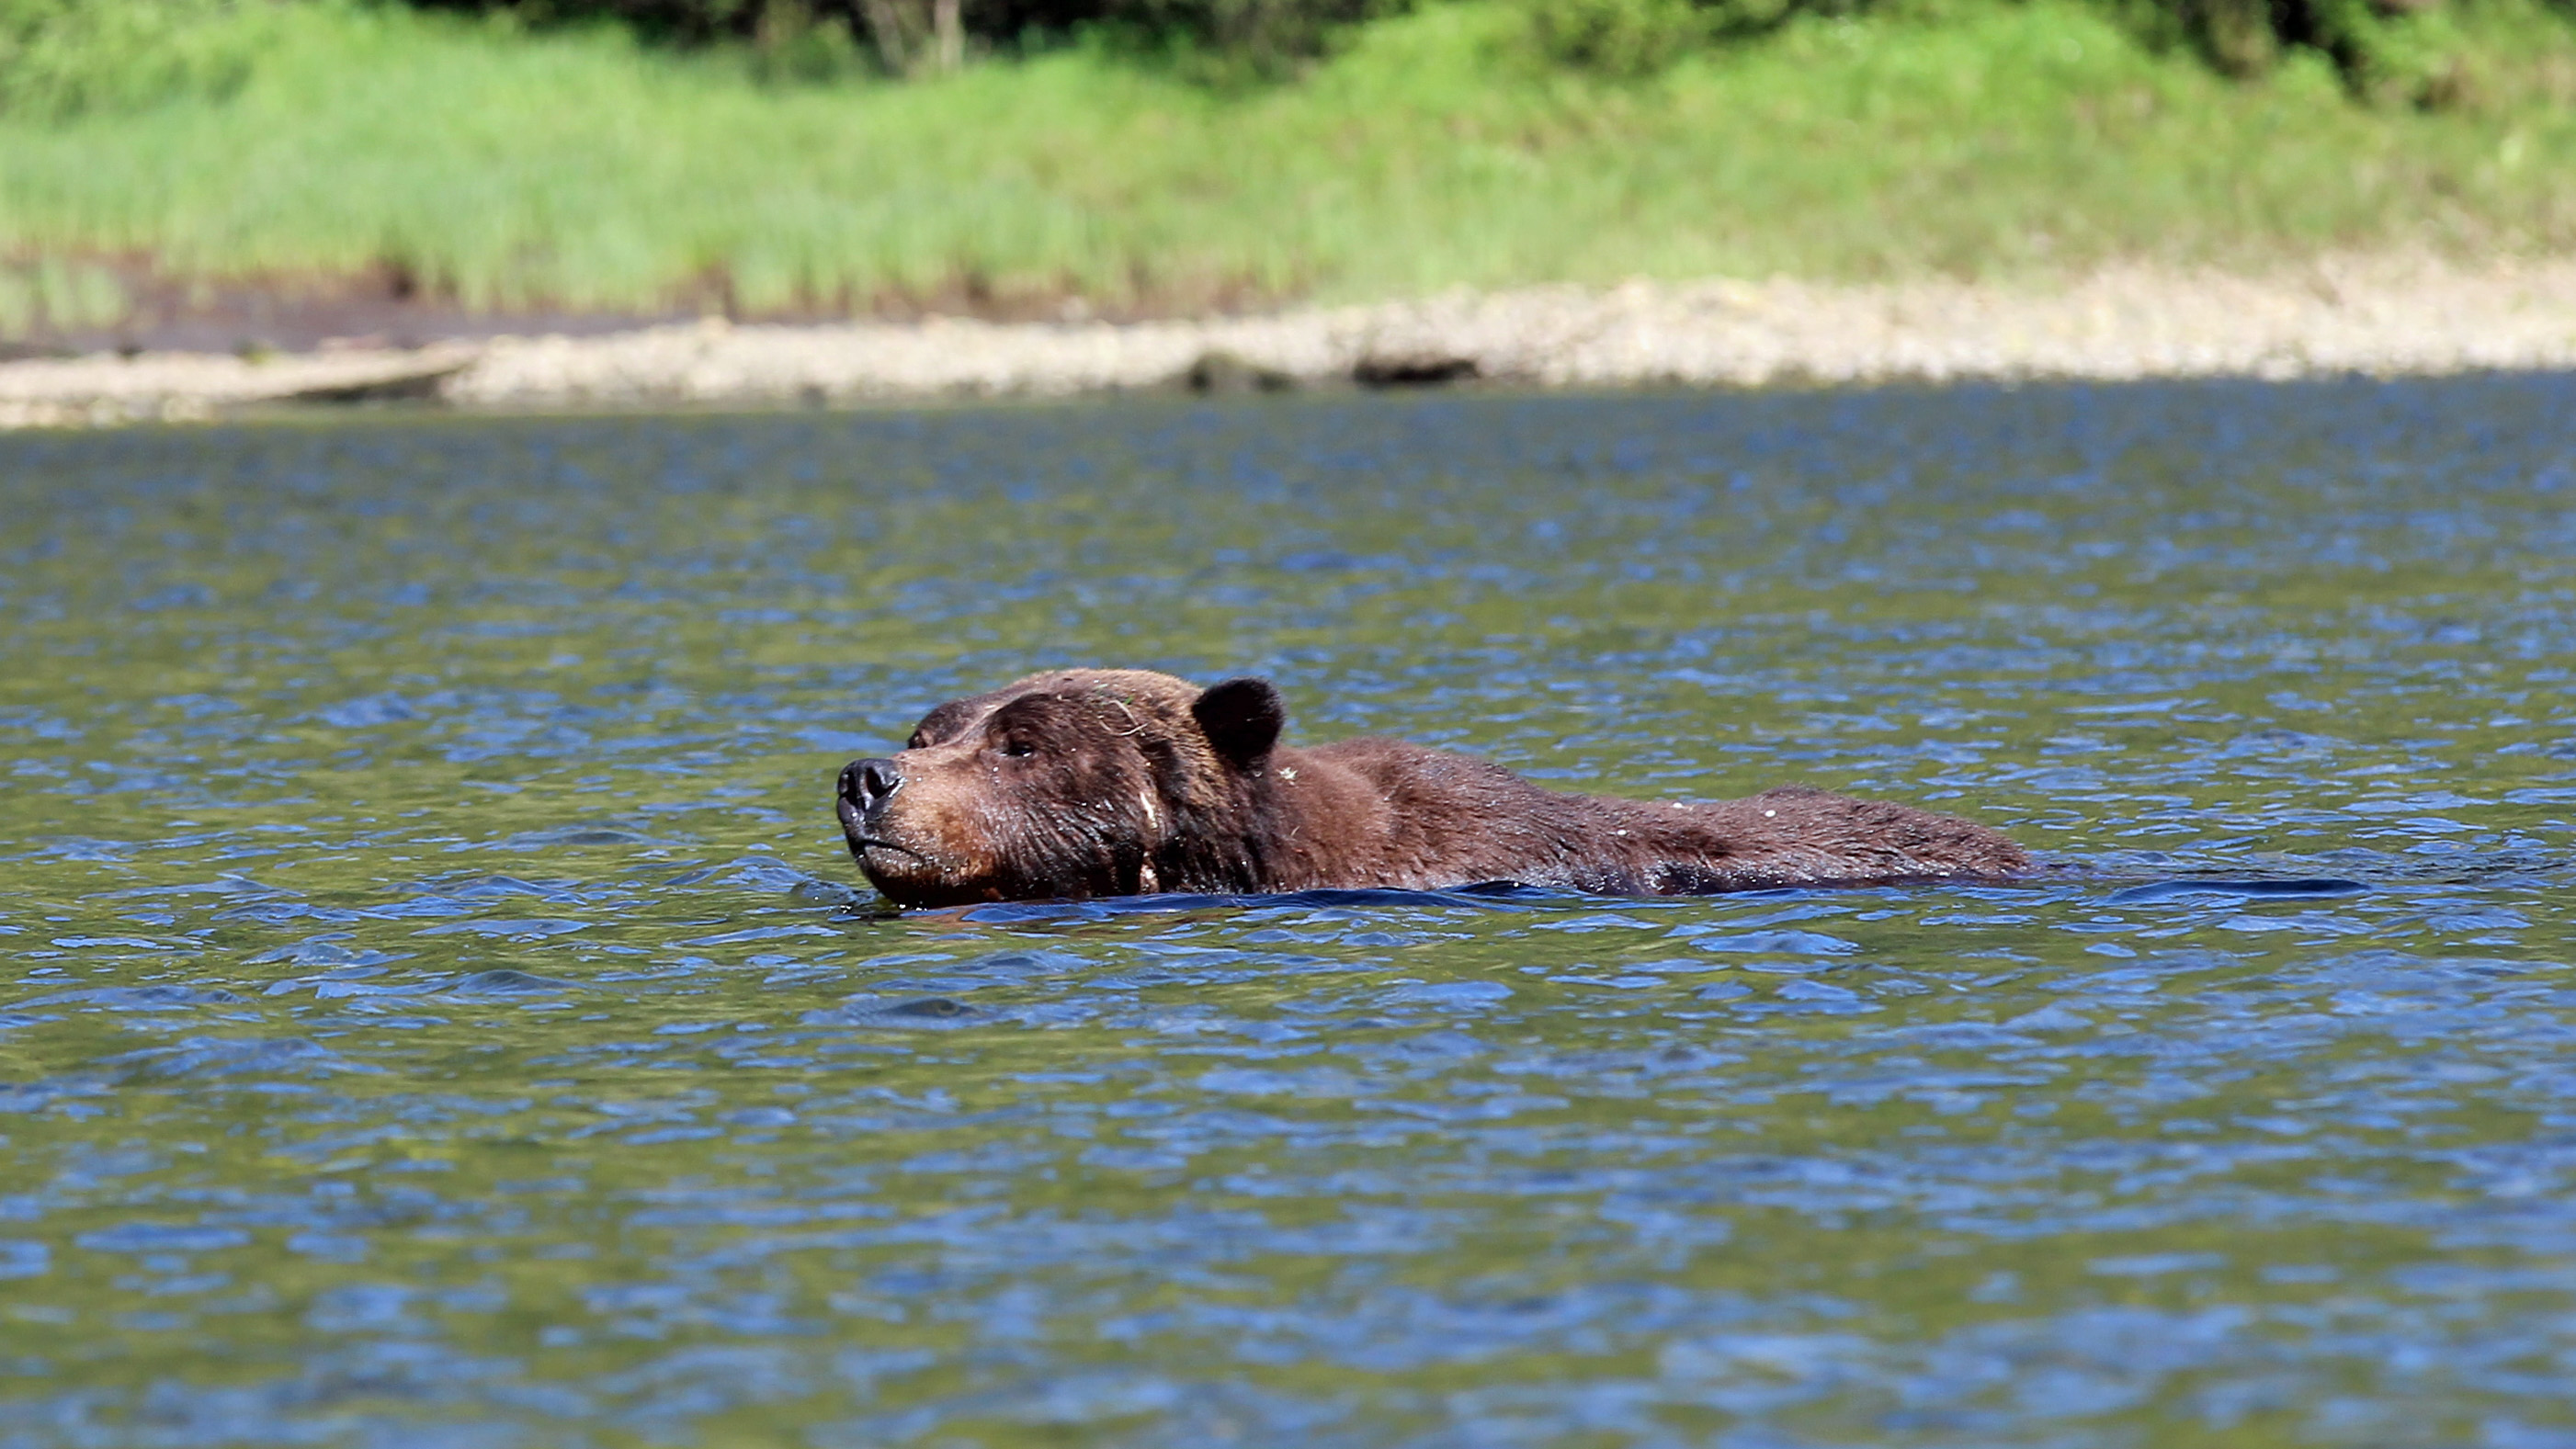 A grizzly local guides call Bo Diddley swimming across the estuary in pursuit of a female bear.